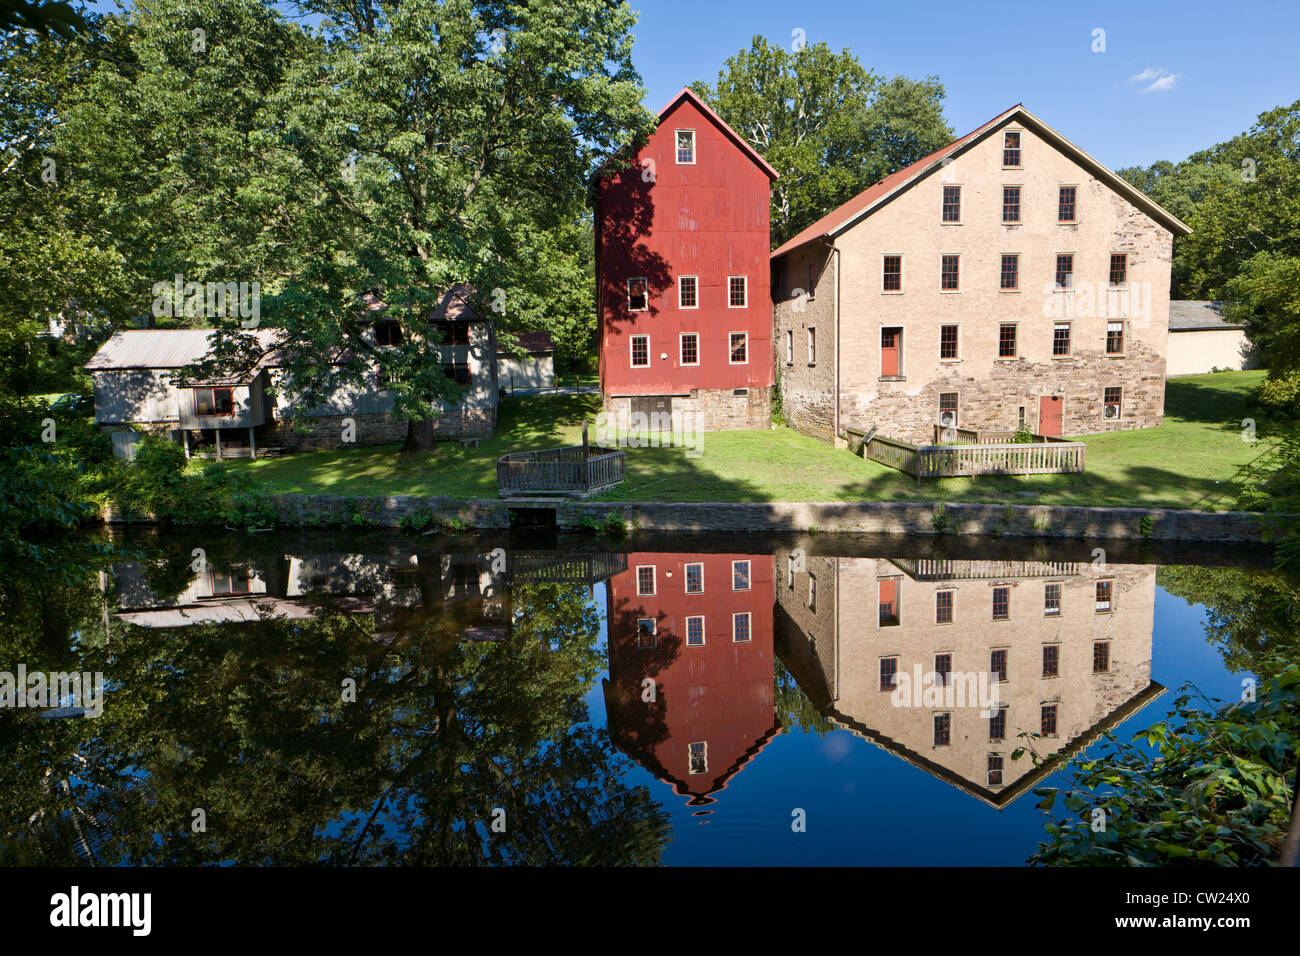 Prallsville Mills, Delaware and Raritan Canal State Park, New Jersey - Stock Image